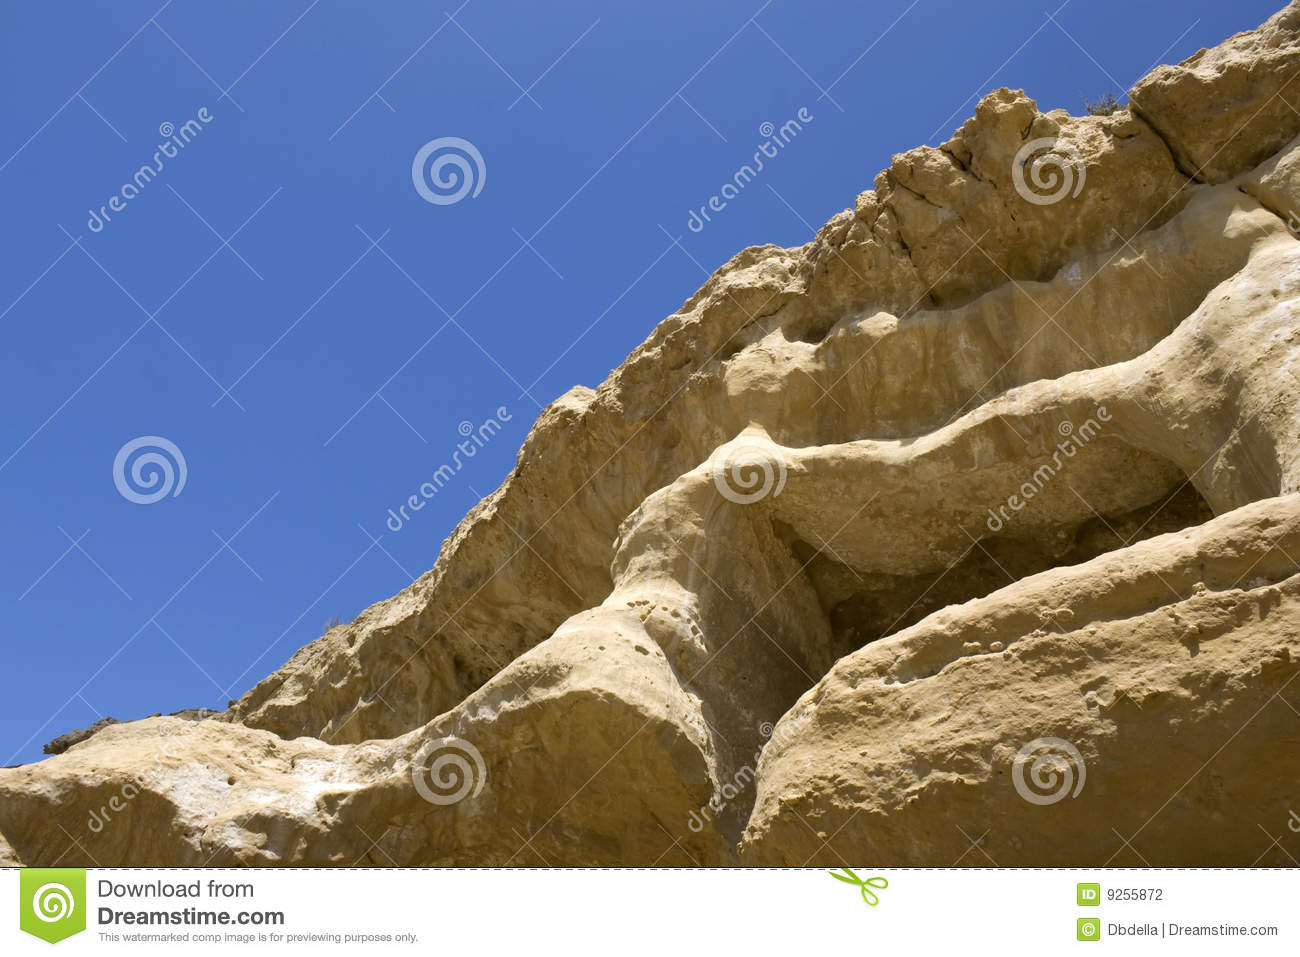 Abstract cliff